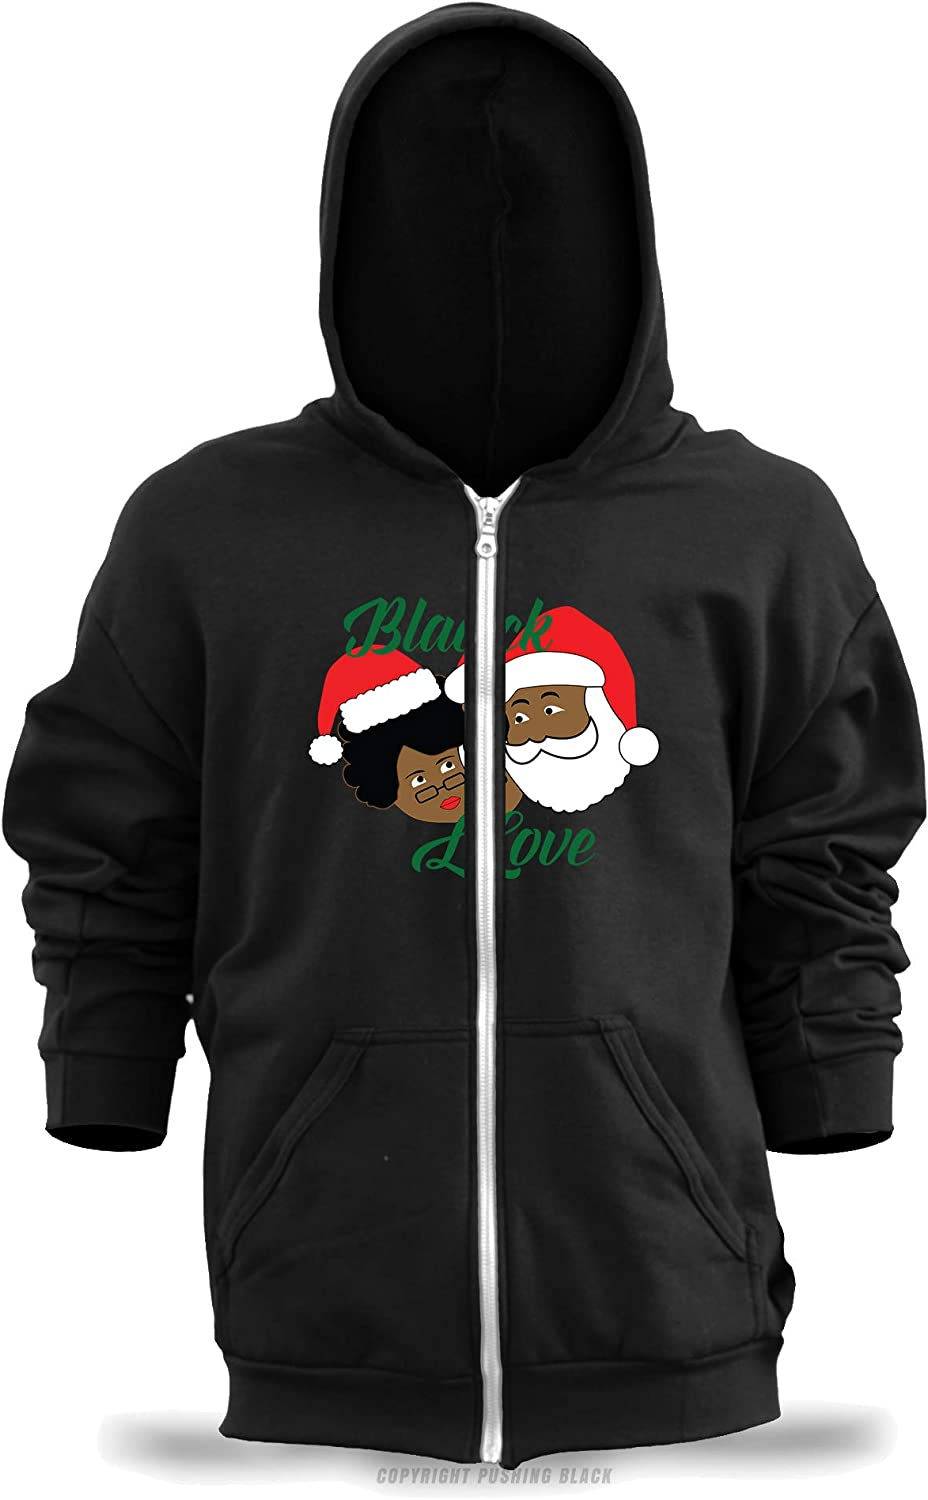 Black Love Mr and Mrs Clause Unisex Zipper Hoodie